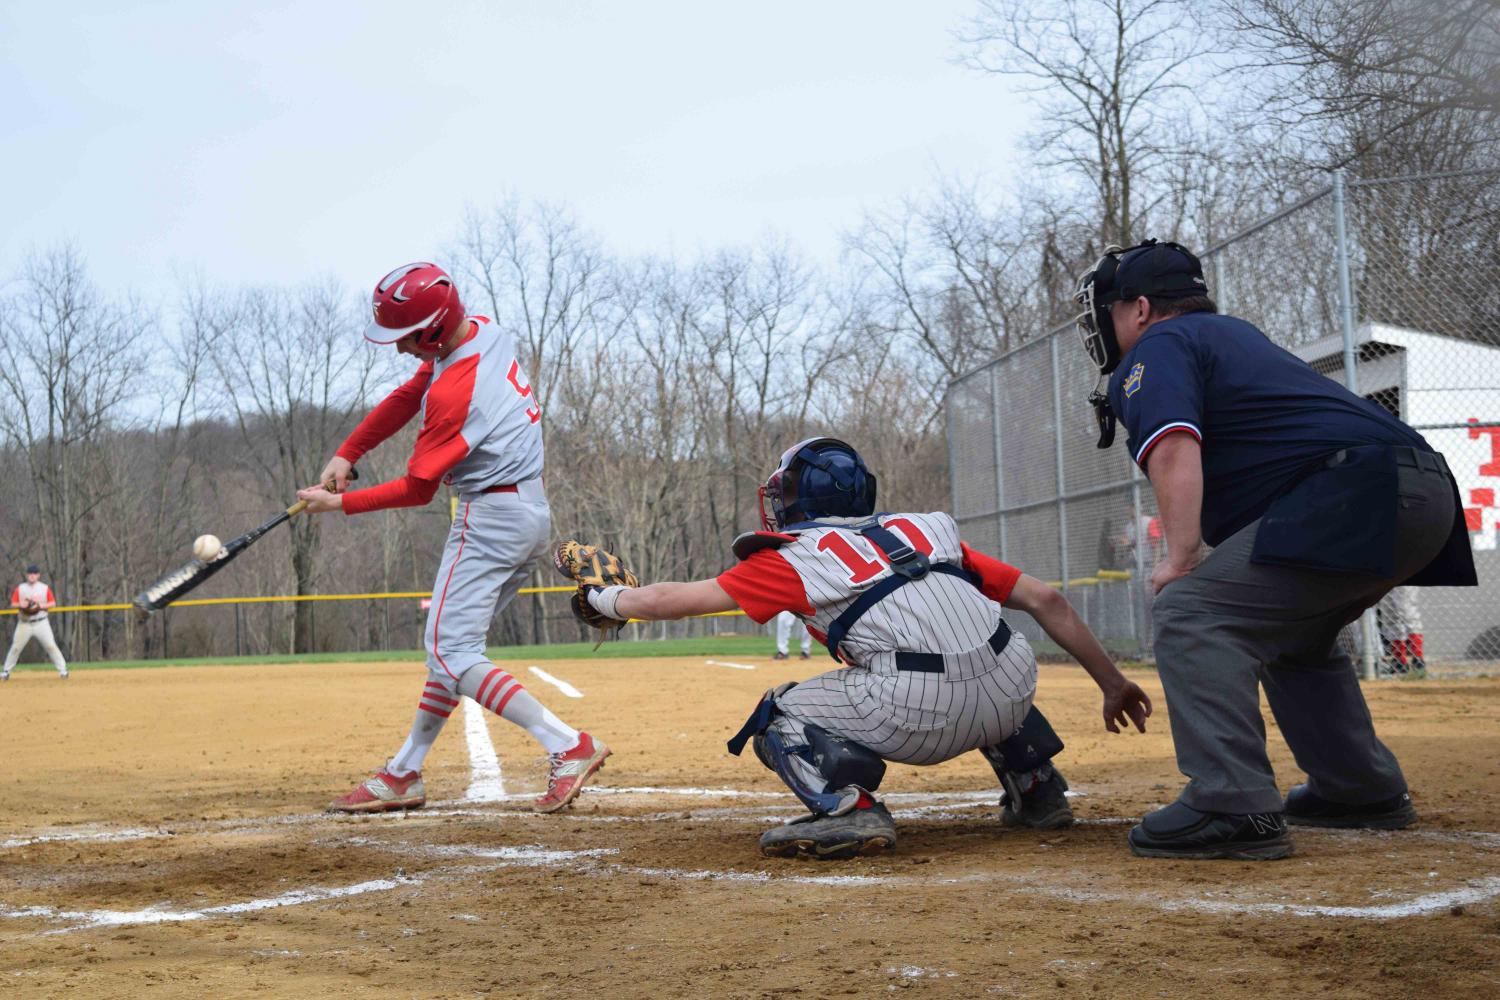 Sophomore Zach Rosa makes contact with the ball during the home game versus Summit Academy on April 5.